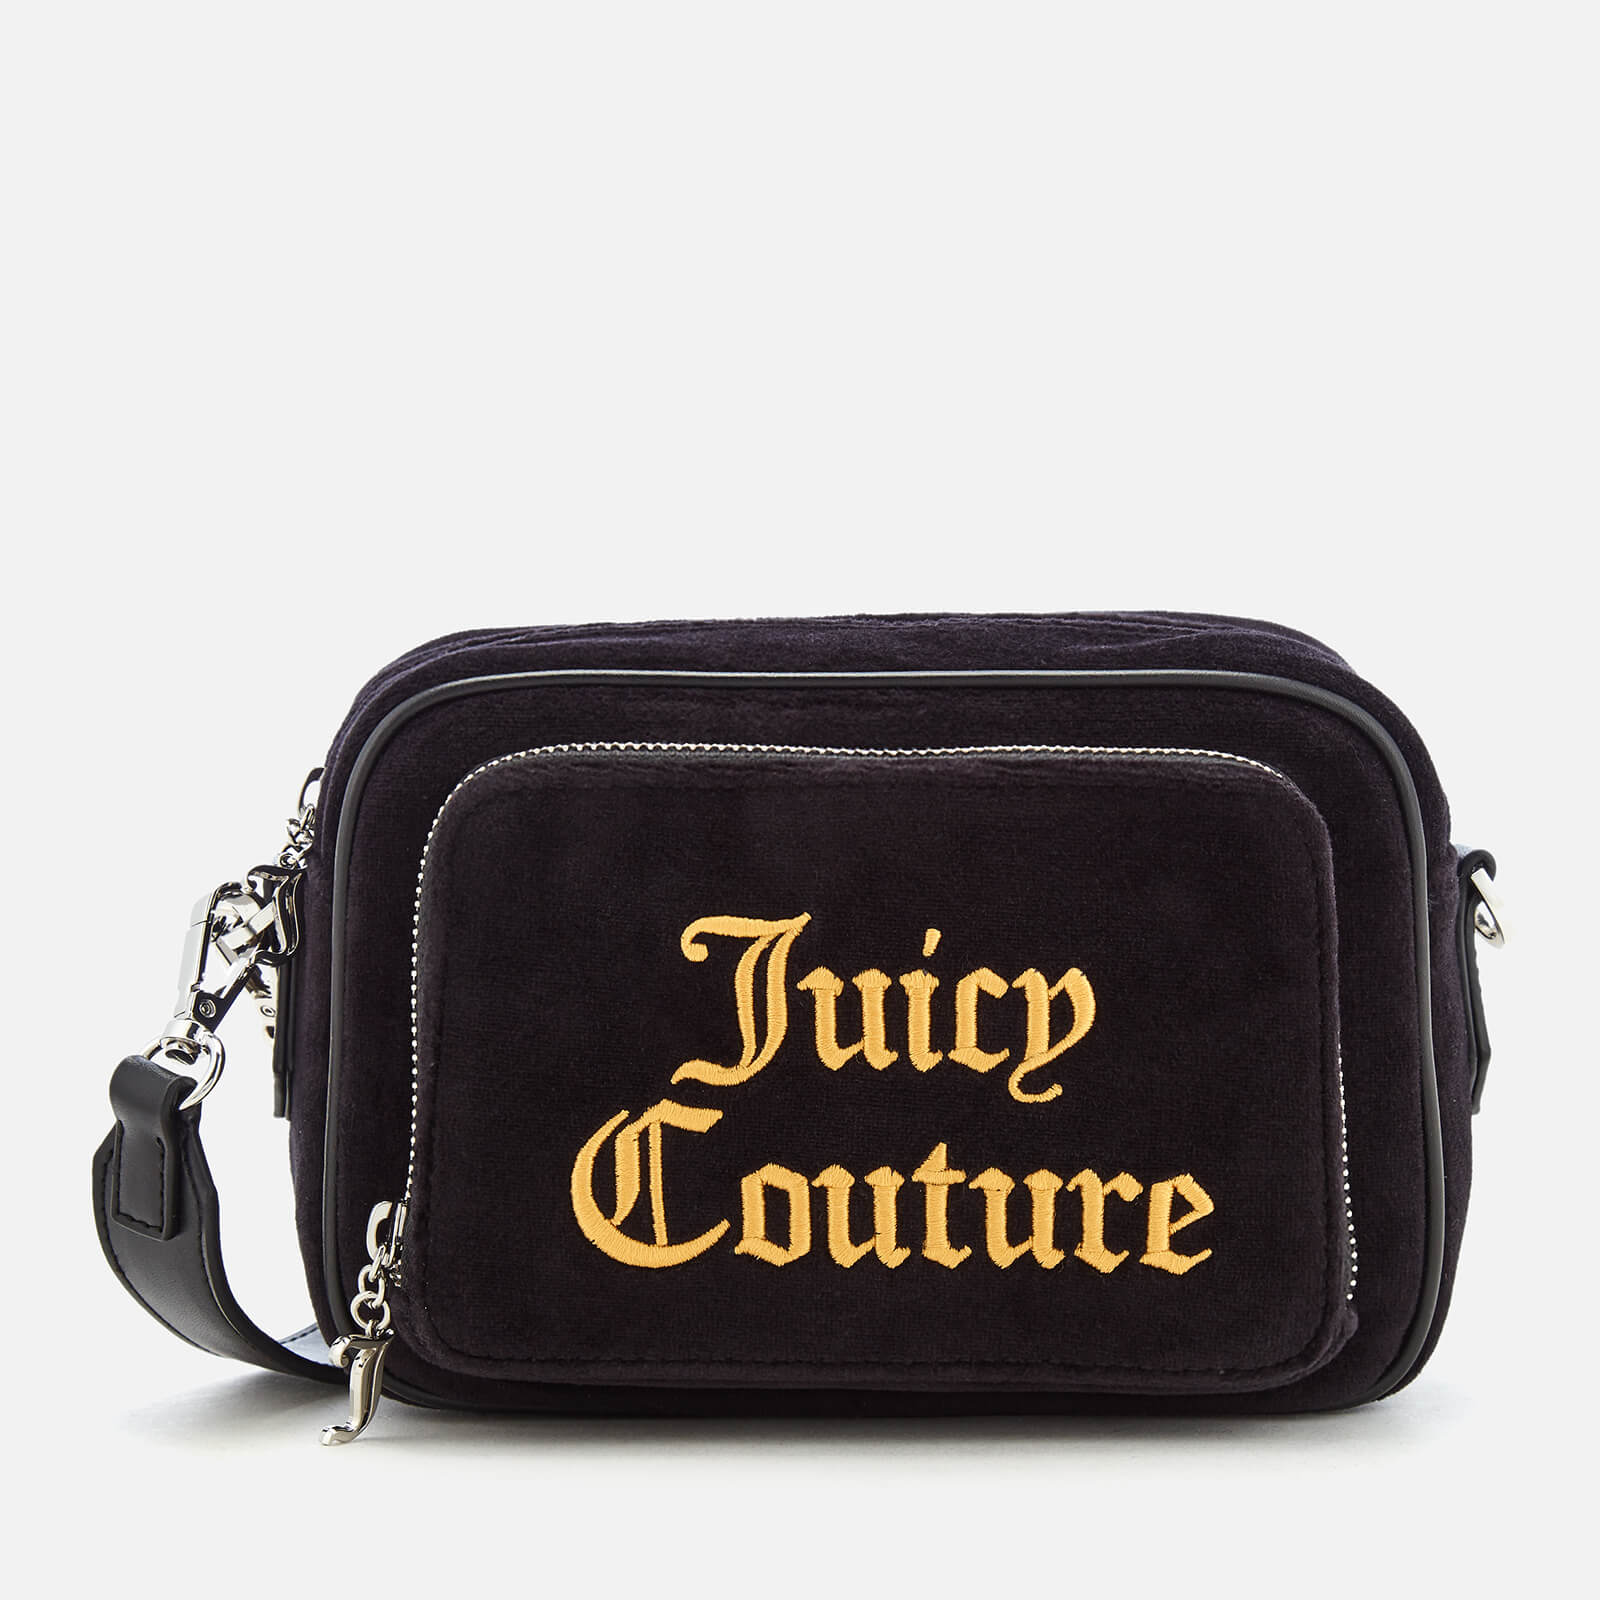 38e3b4e3561 Juicy Couture Women's Pixley Camera Belt Bag - Black